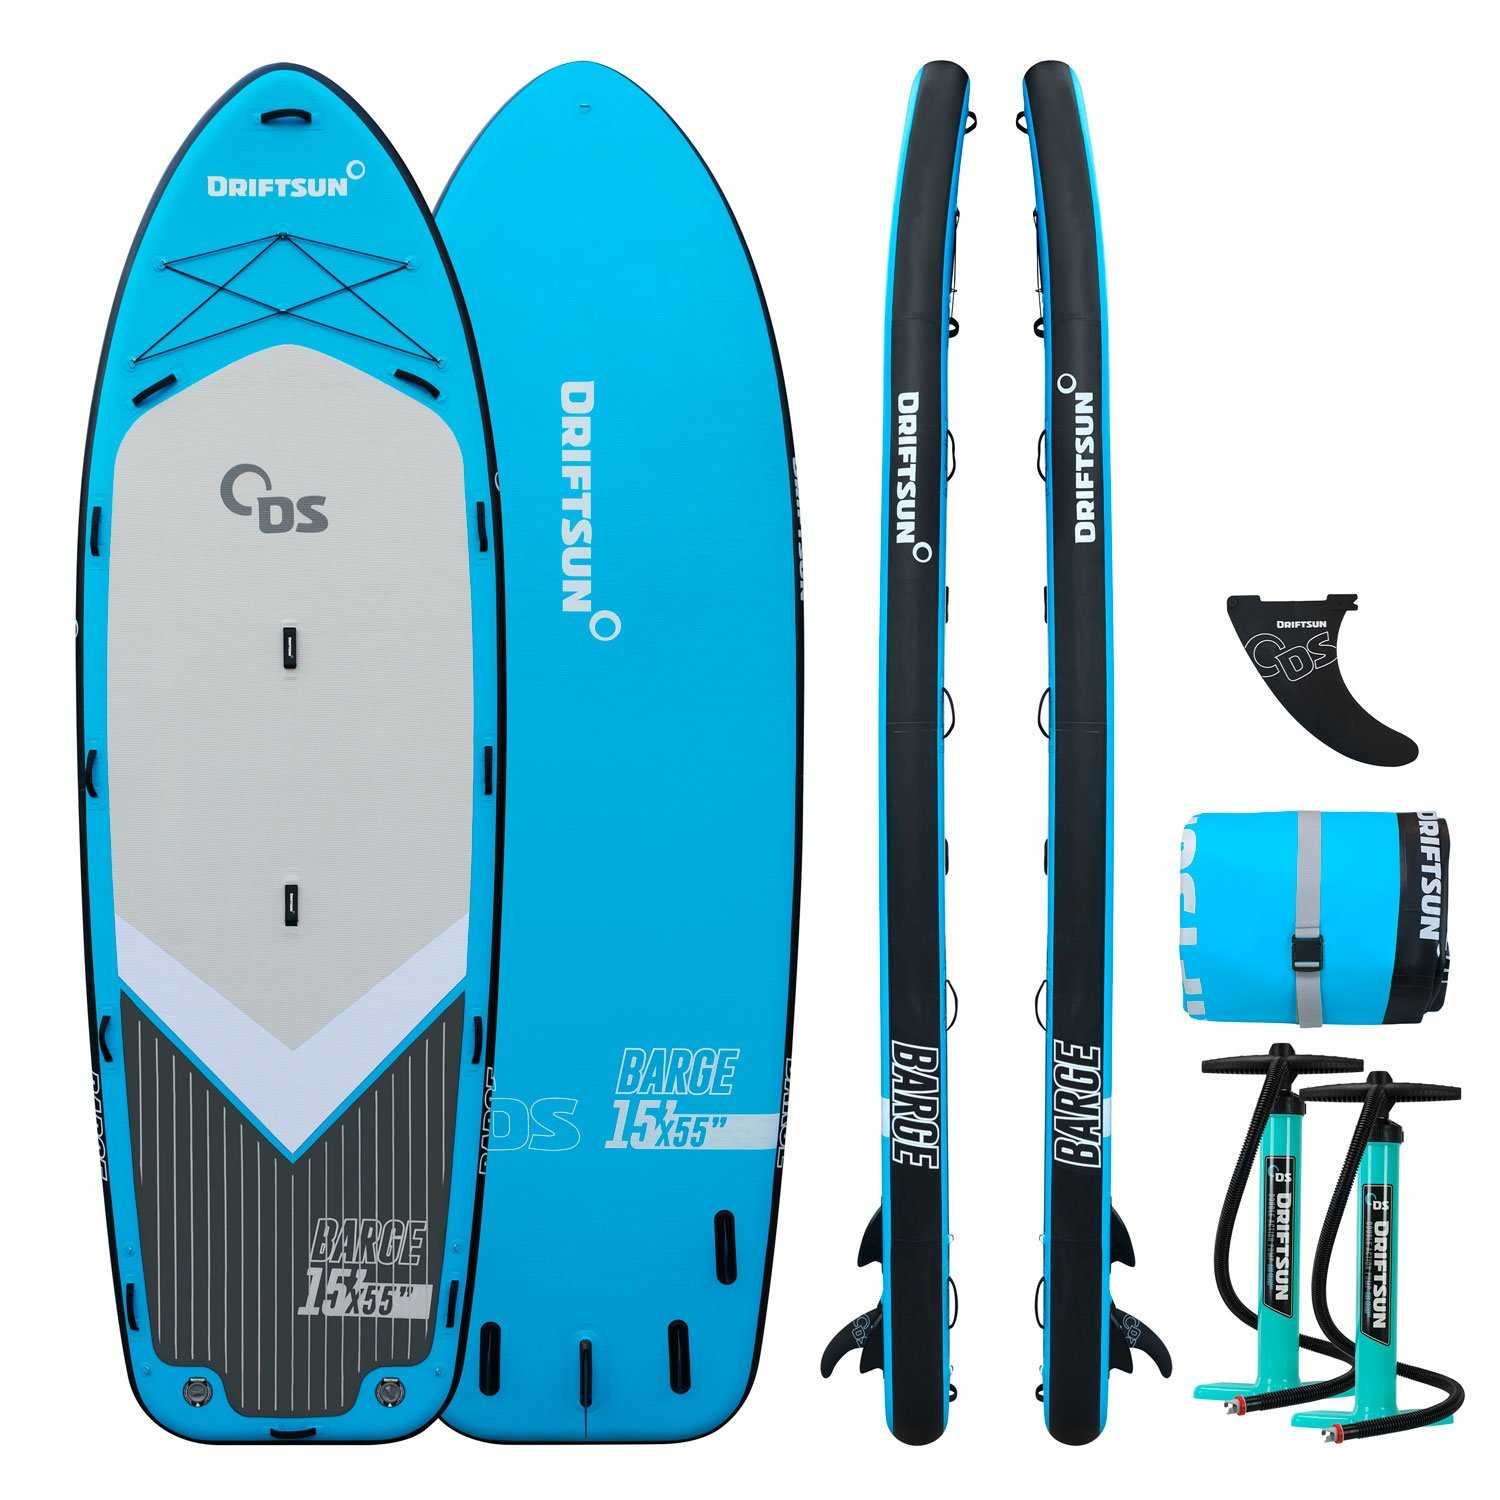 Driftsun Party Barge 15 Paddle Board Mega iSUP � Large Multi Person Inflatable Paddleboard with 2 Dual Action Hand Pumps by Driftsun